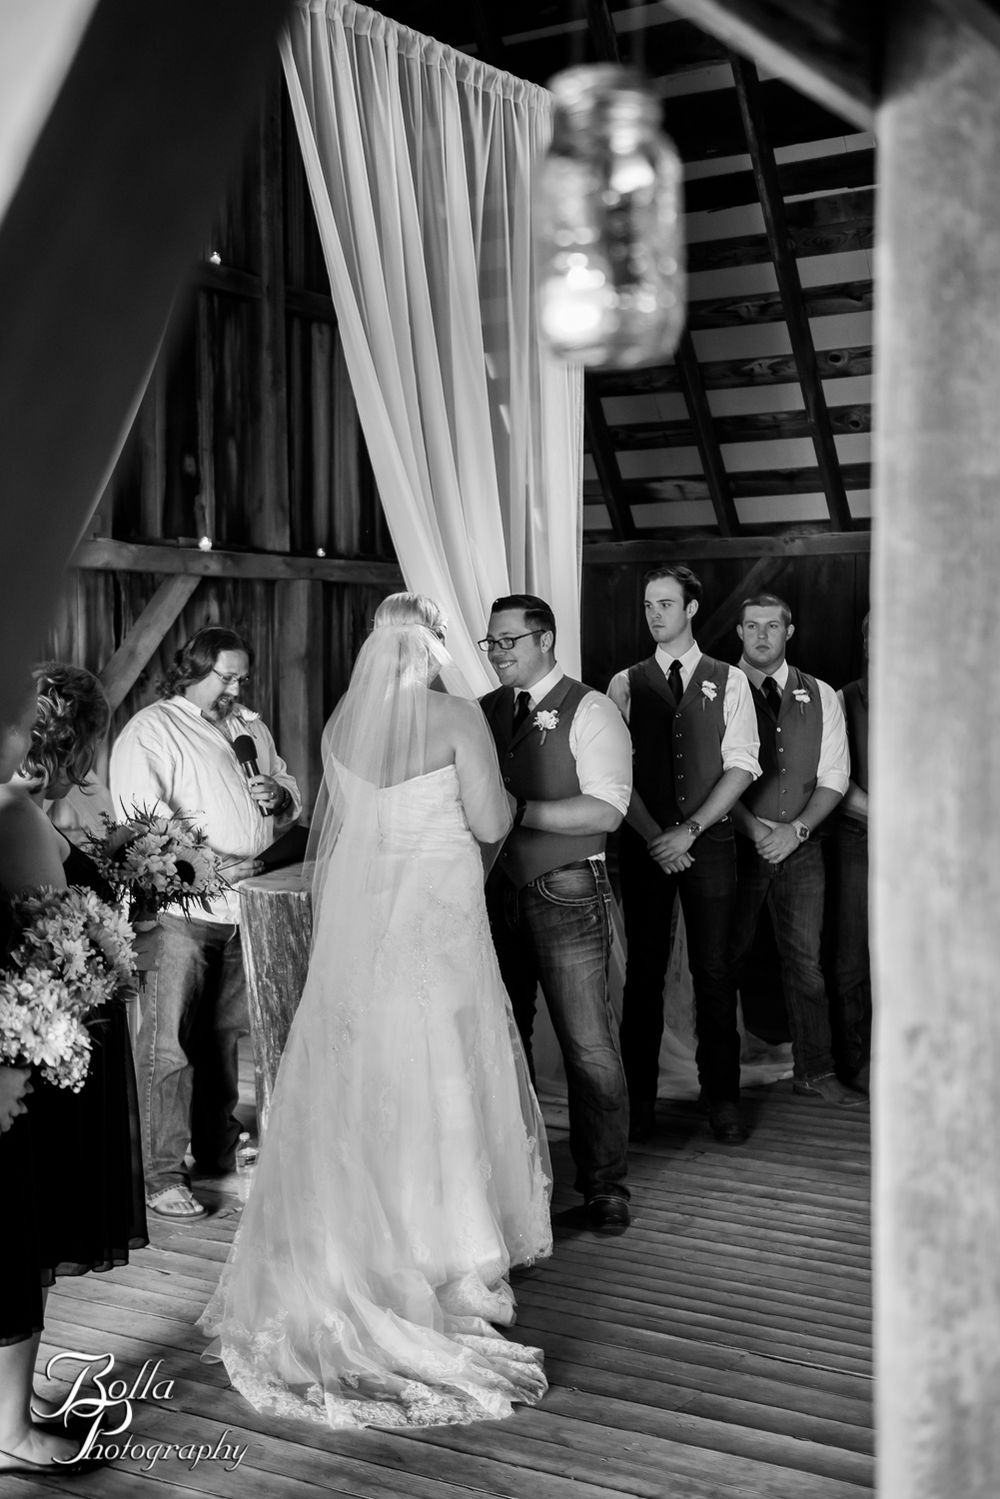 Bolla_Photography_St_Louis_wedding_photographer_Smith-34.jpg